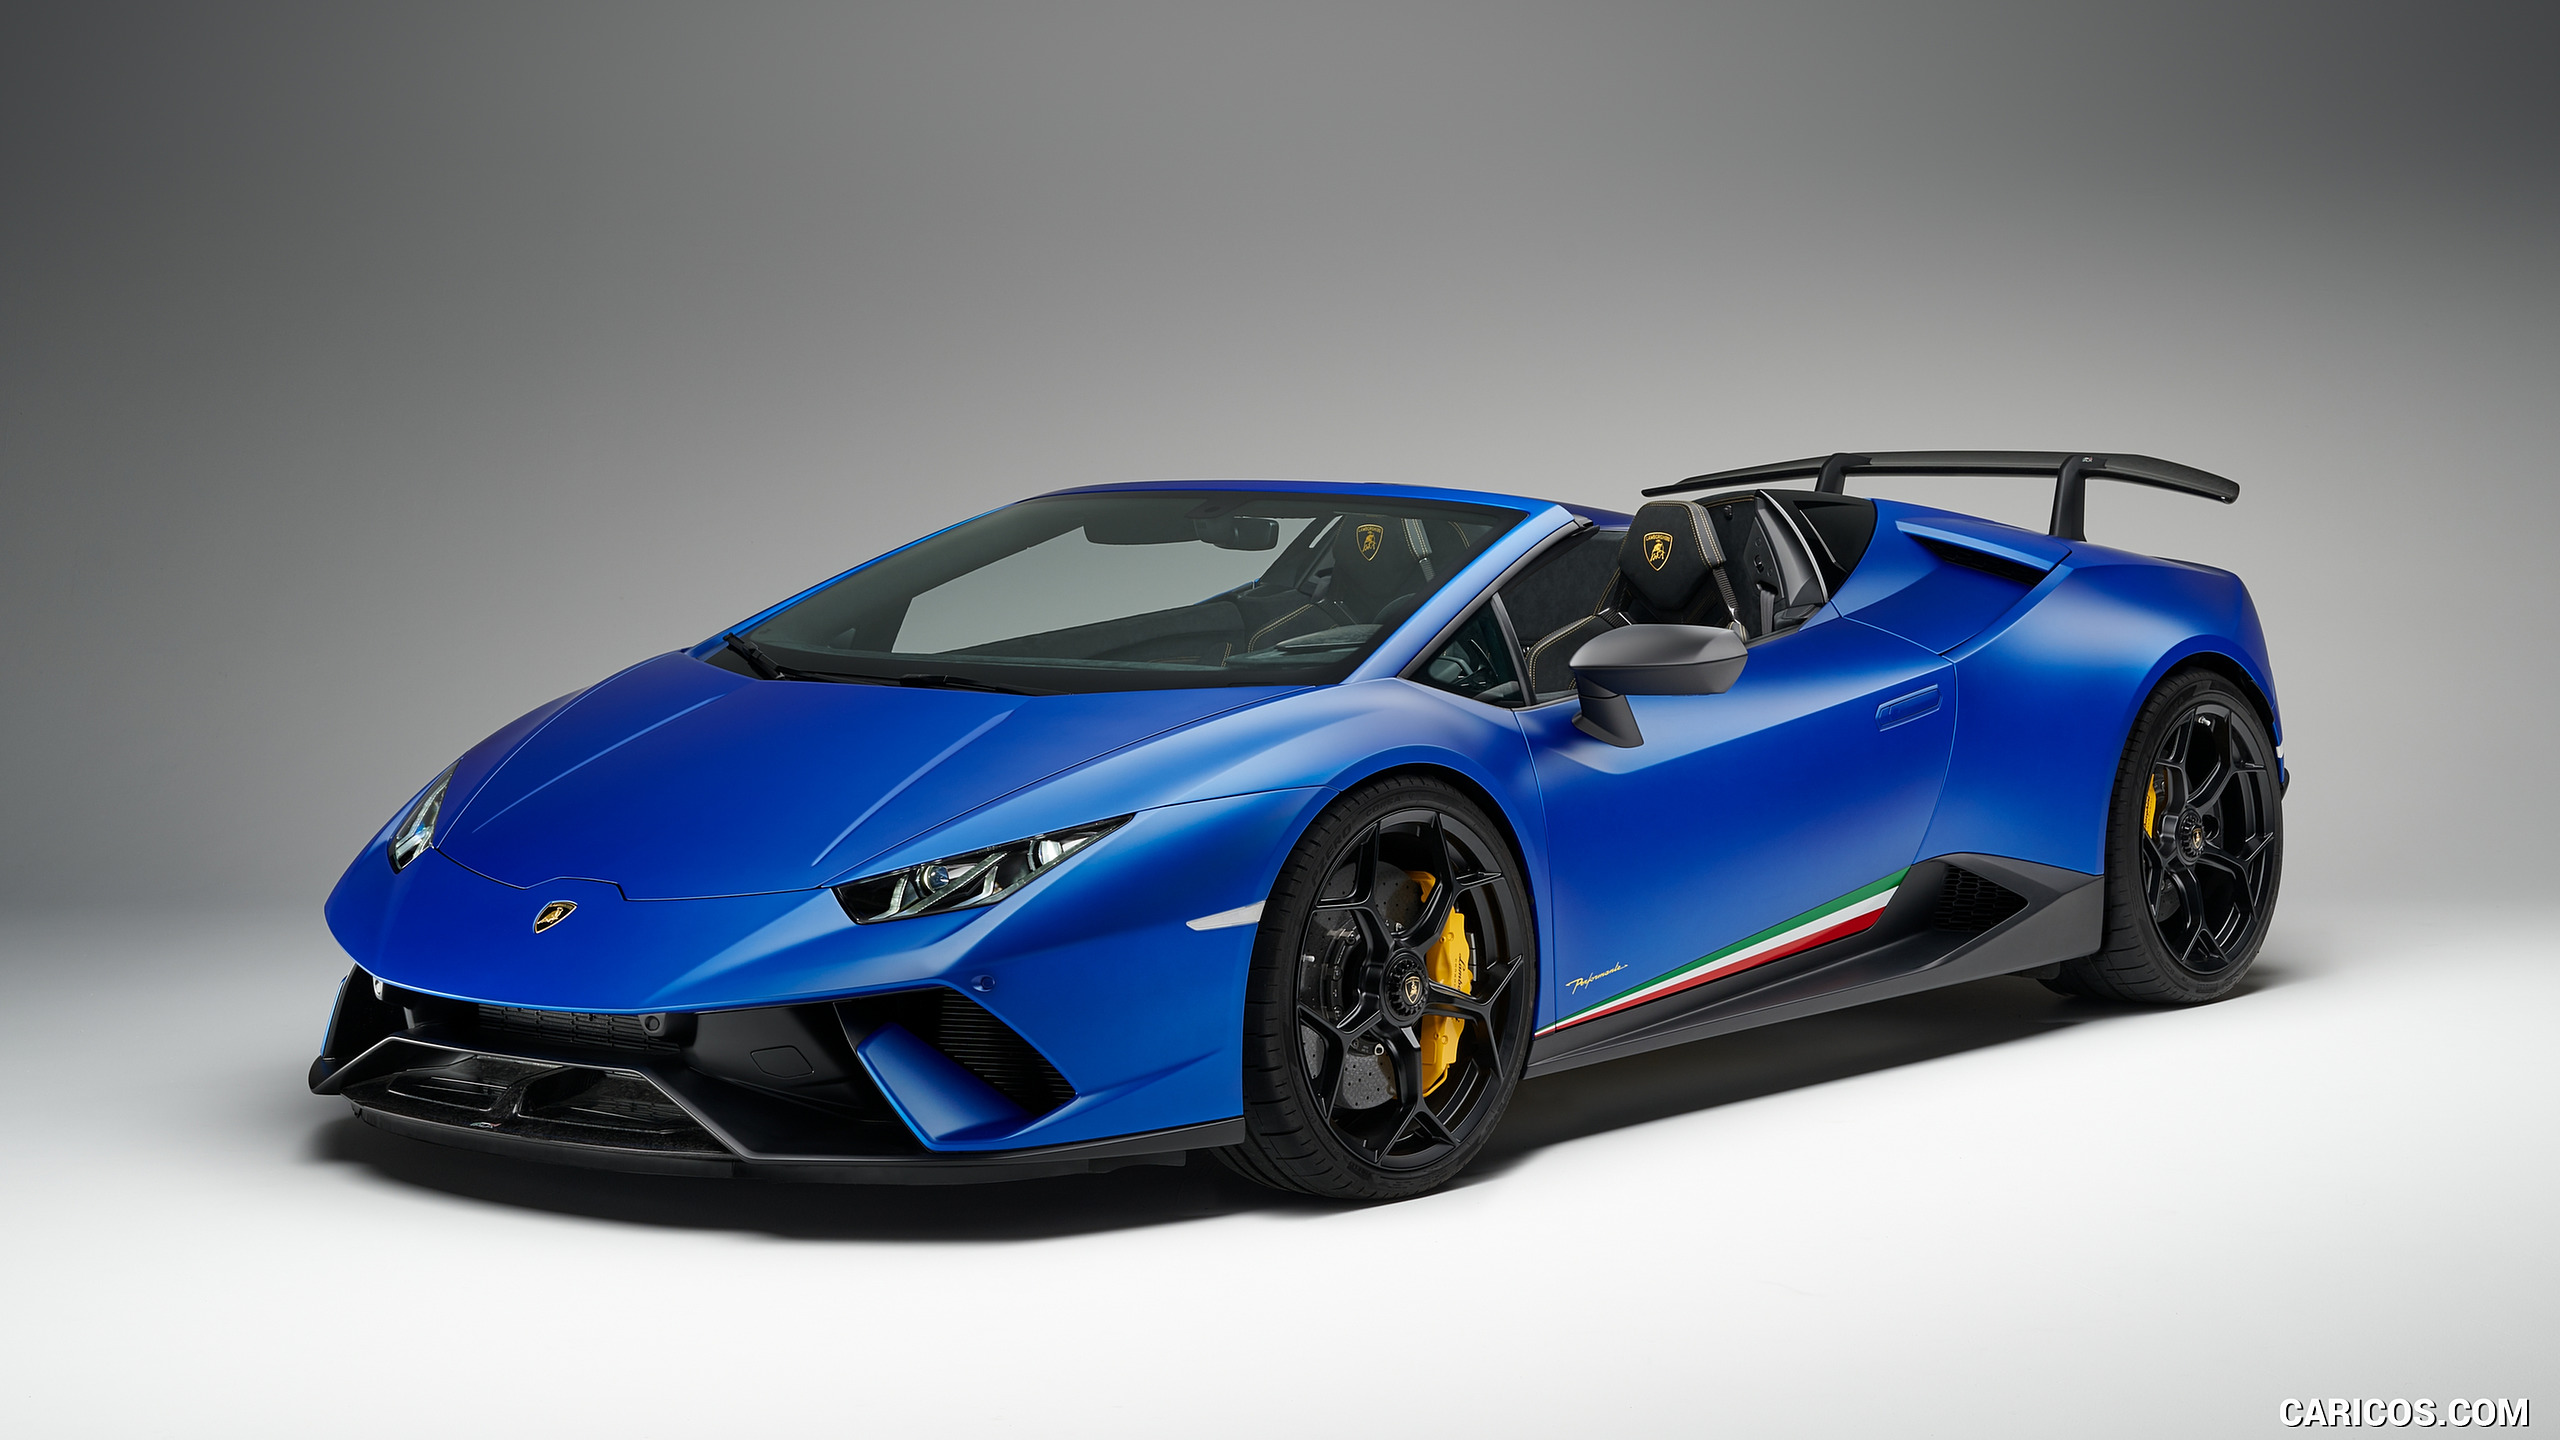 2019 Lamborghini Huracn Spyder Performante   Front Three Quarter 2560x1440